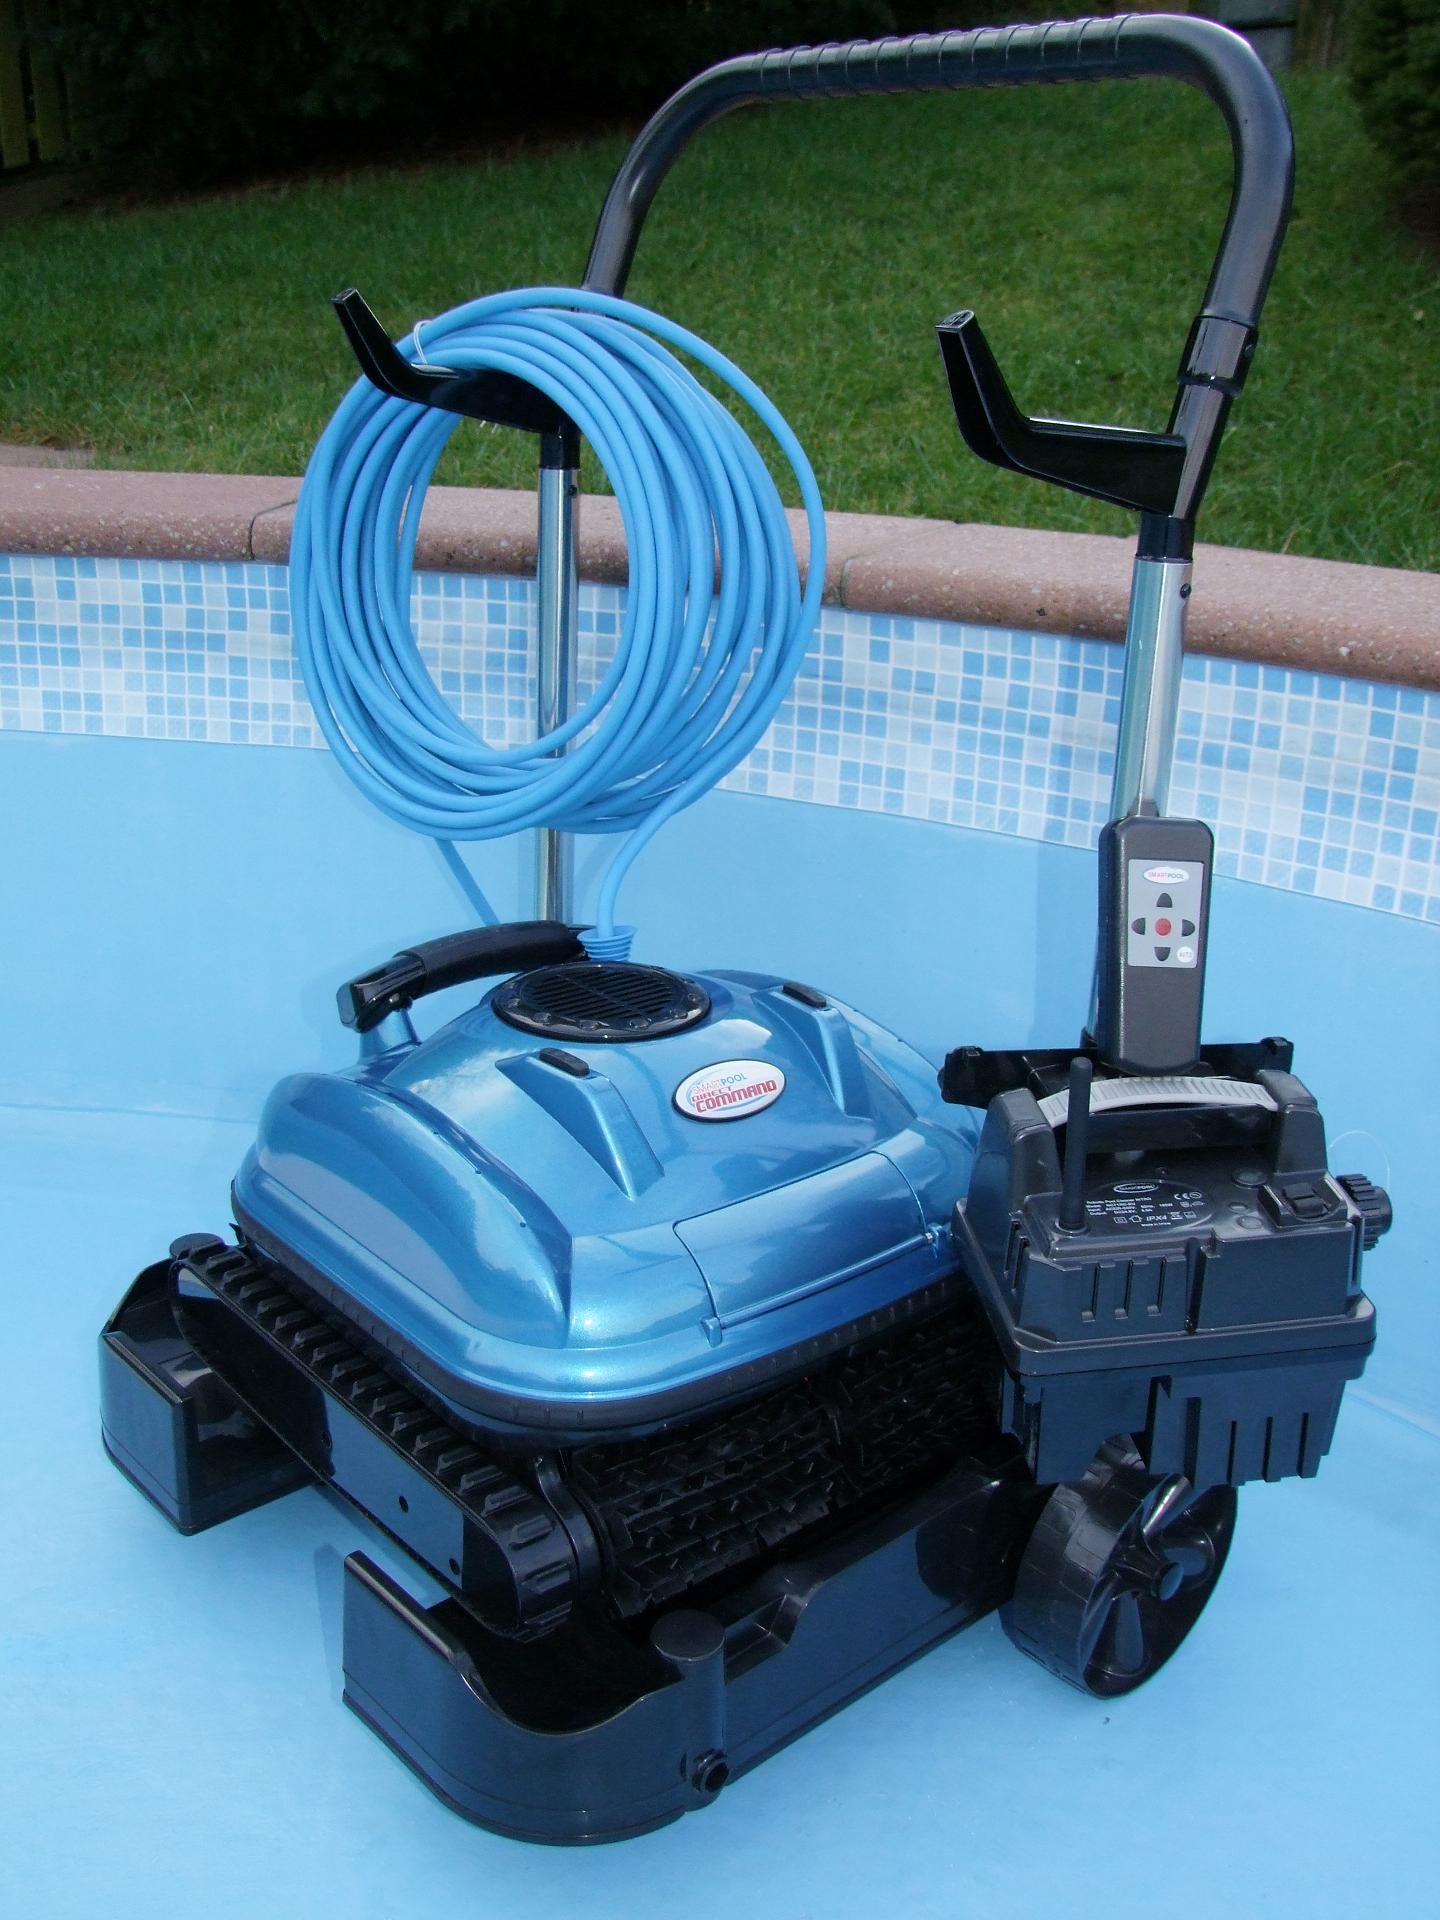 Pool Bodensauger Manuell Smart Pool Robot Cleaner Mit Fernbedienung Poolroboter